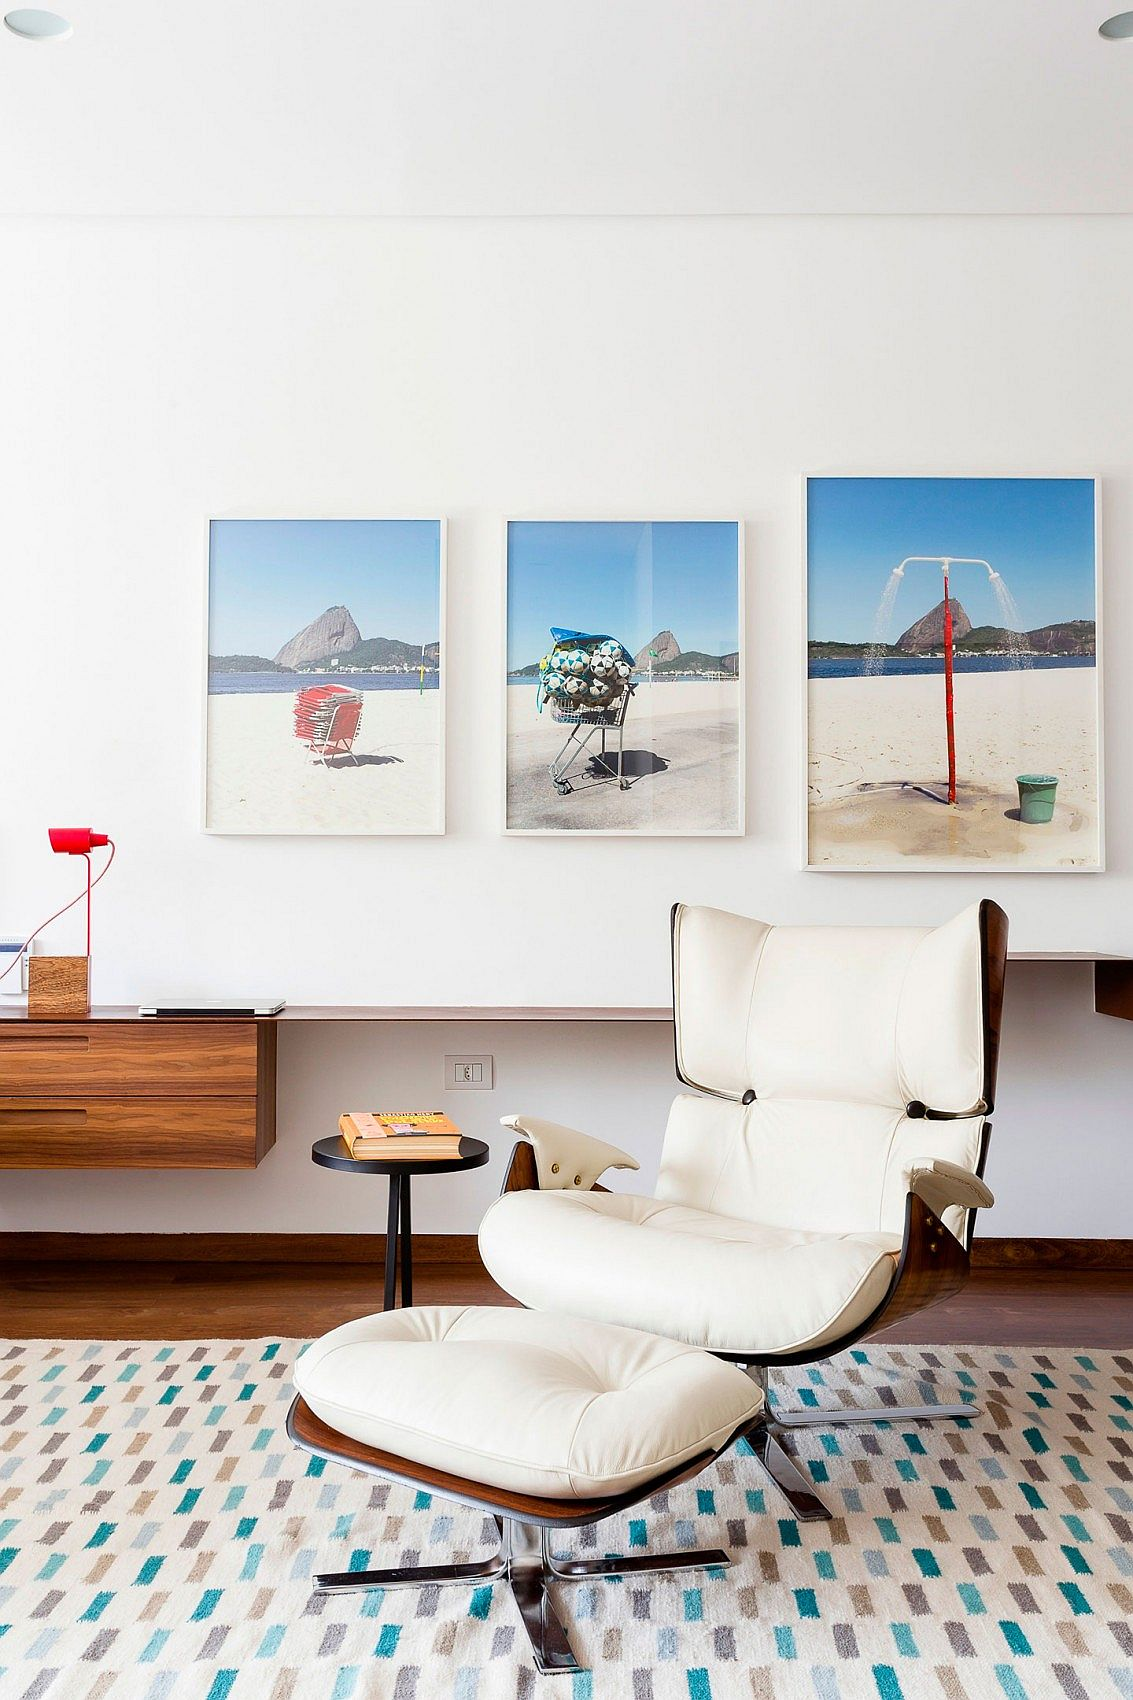 Beach-themed photographs set the mood in the bedroom of the Brazilian home